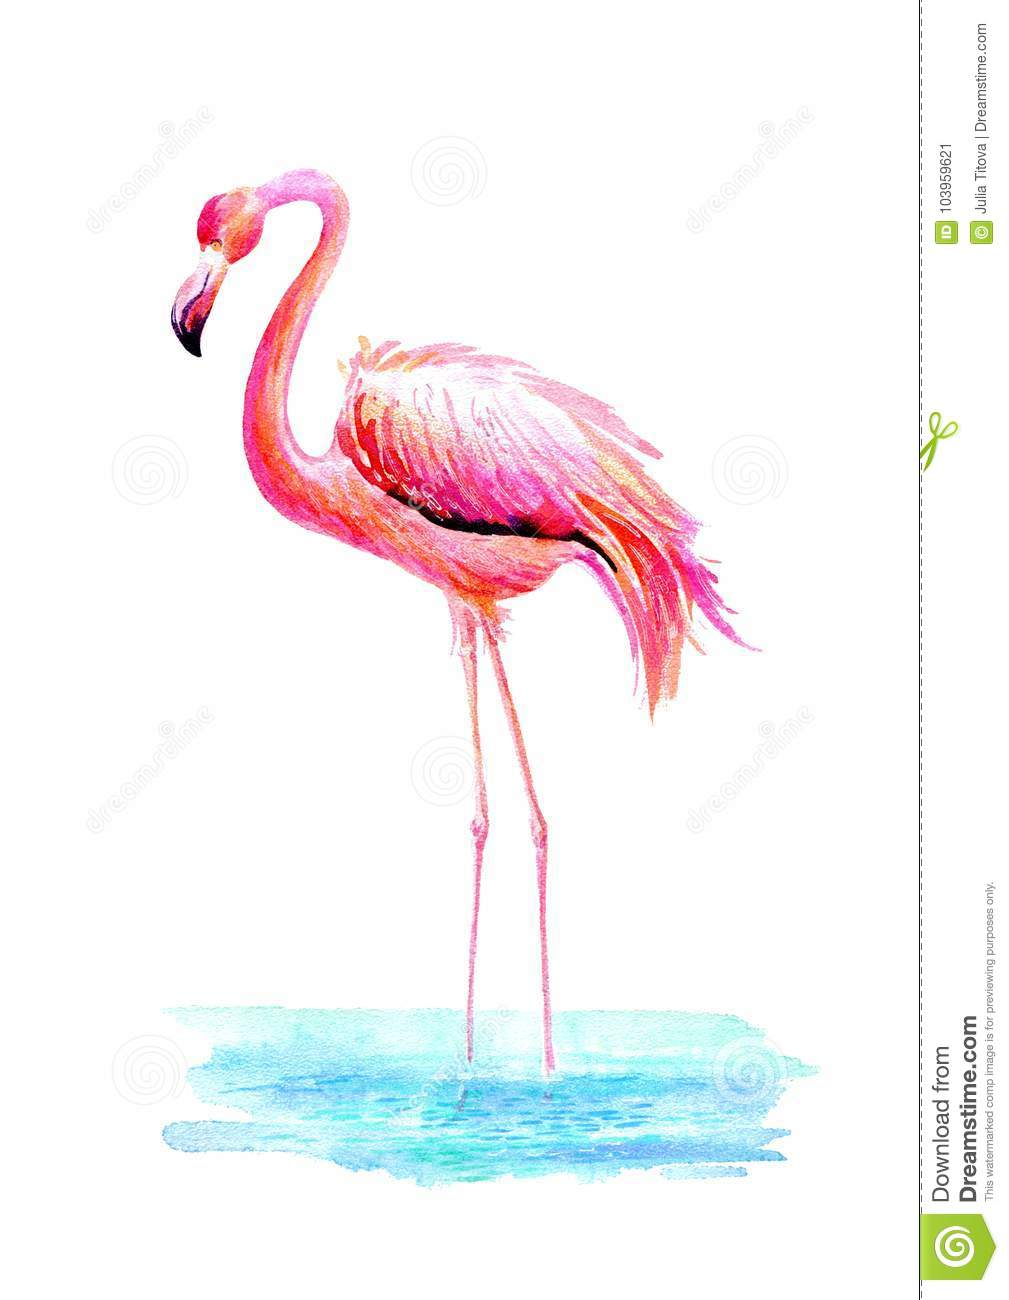 Flamingo in water.Exotic bird on a white background.